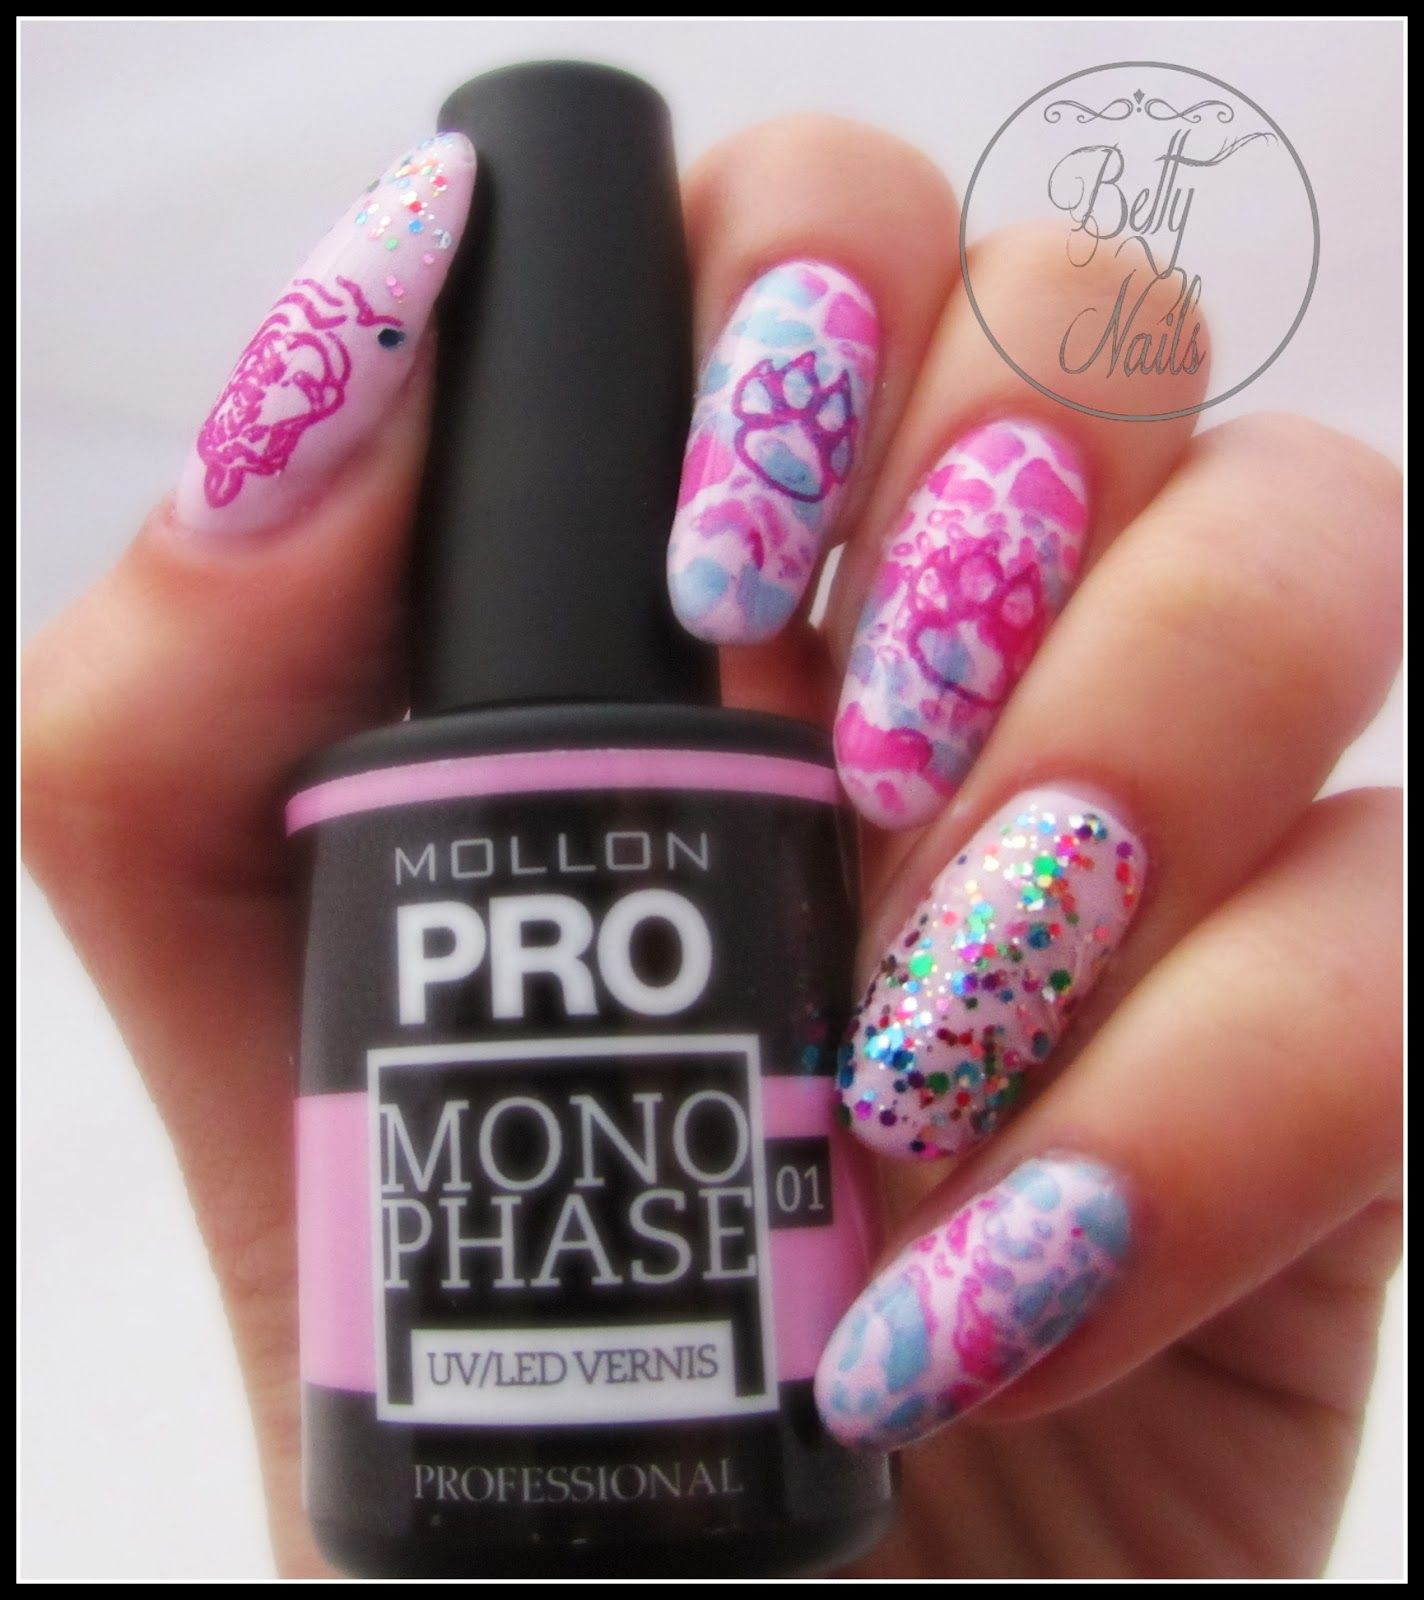 Betty Nails: Mollon Pro Monophase Gisele - Infinity Nails Stamping ...